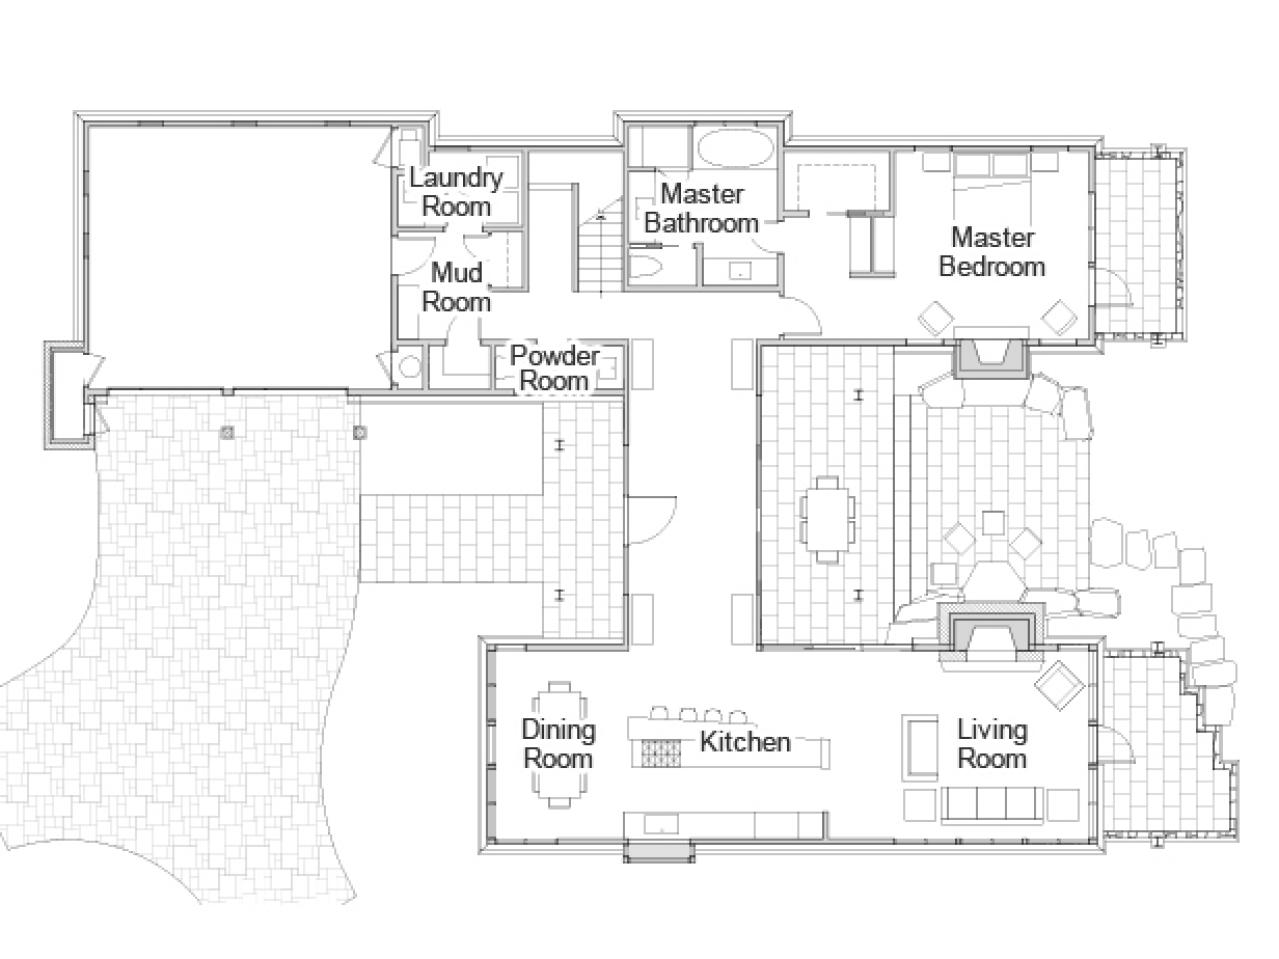 Hgtv dream home 2014 floor plan pictures and video from Dream house floor plans